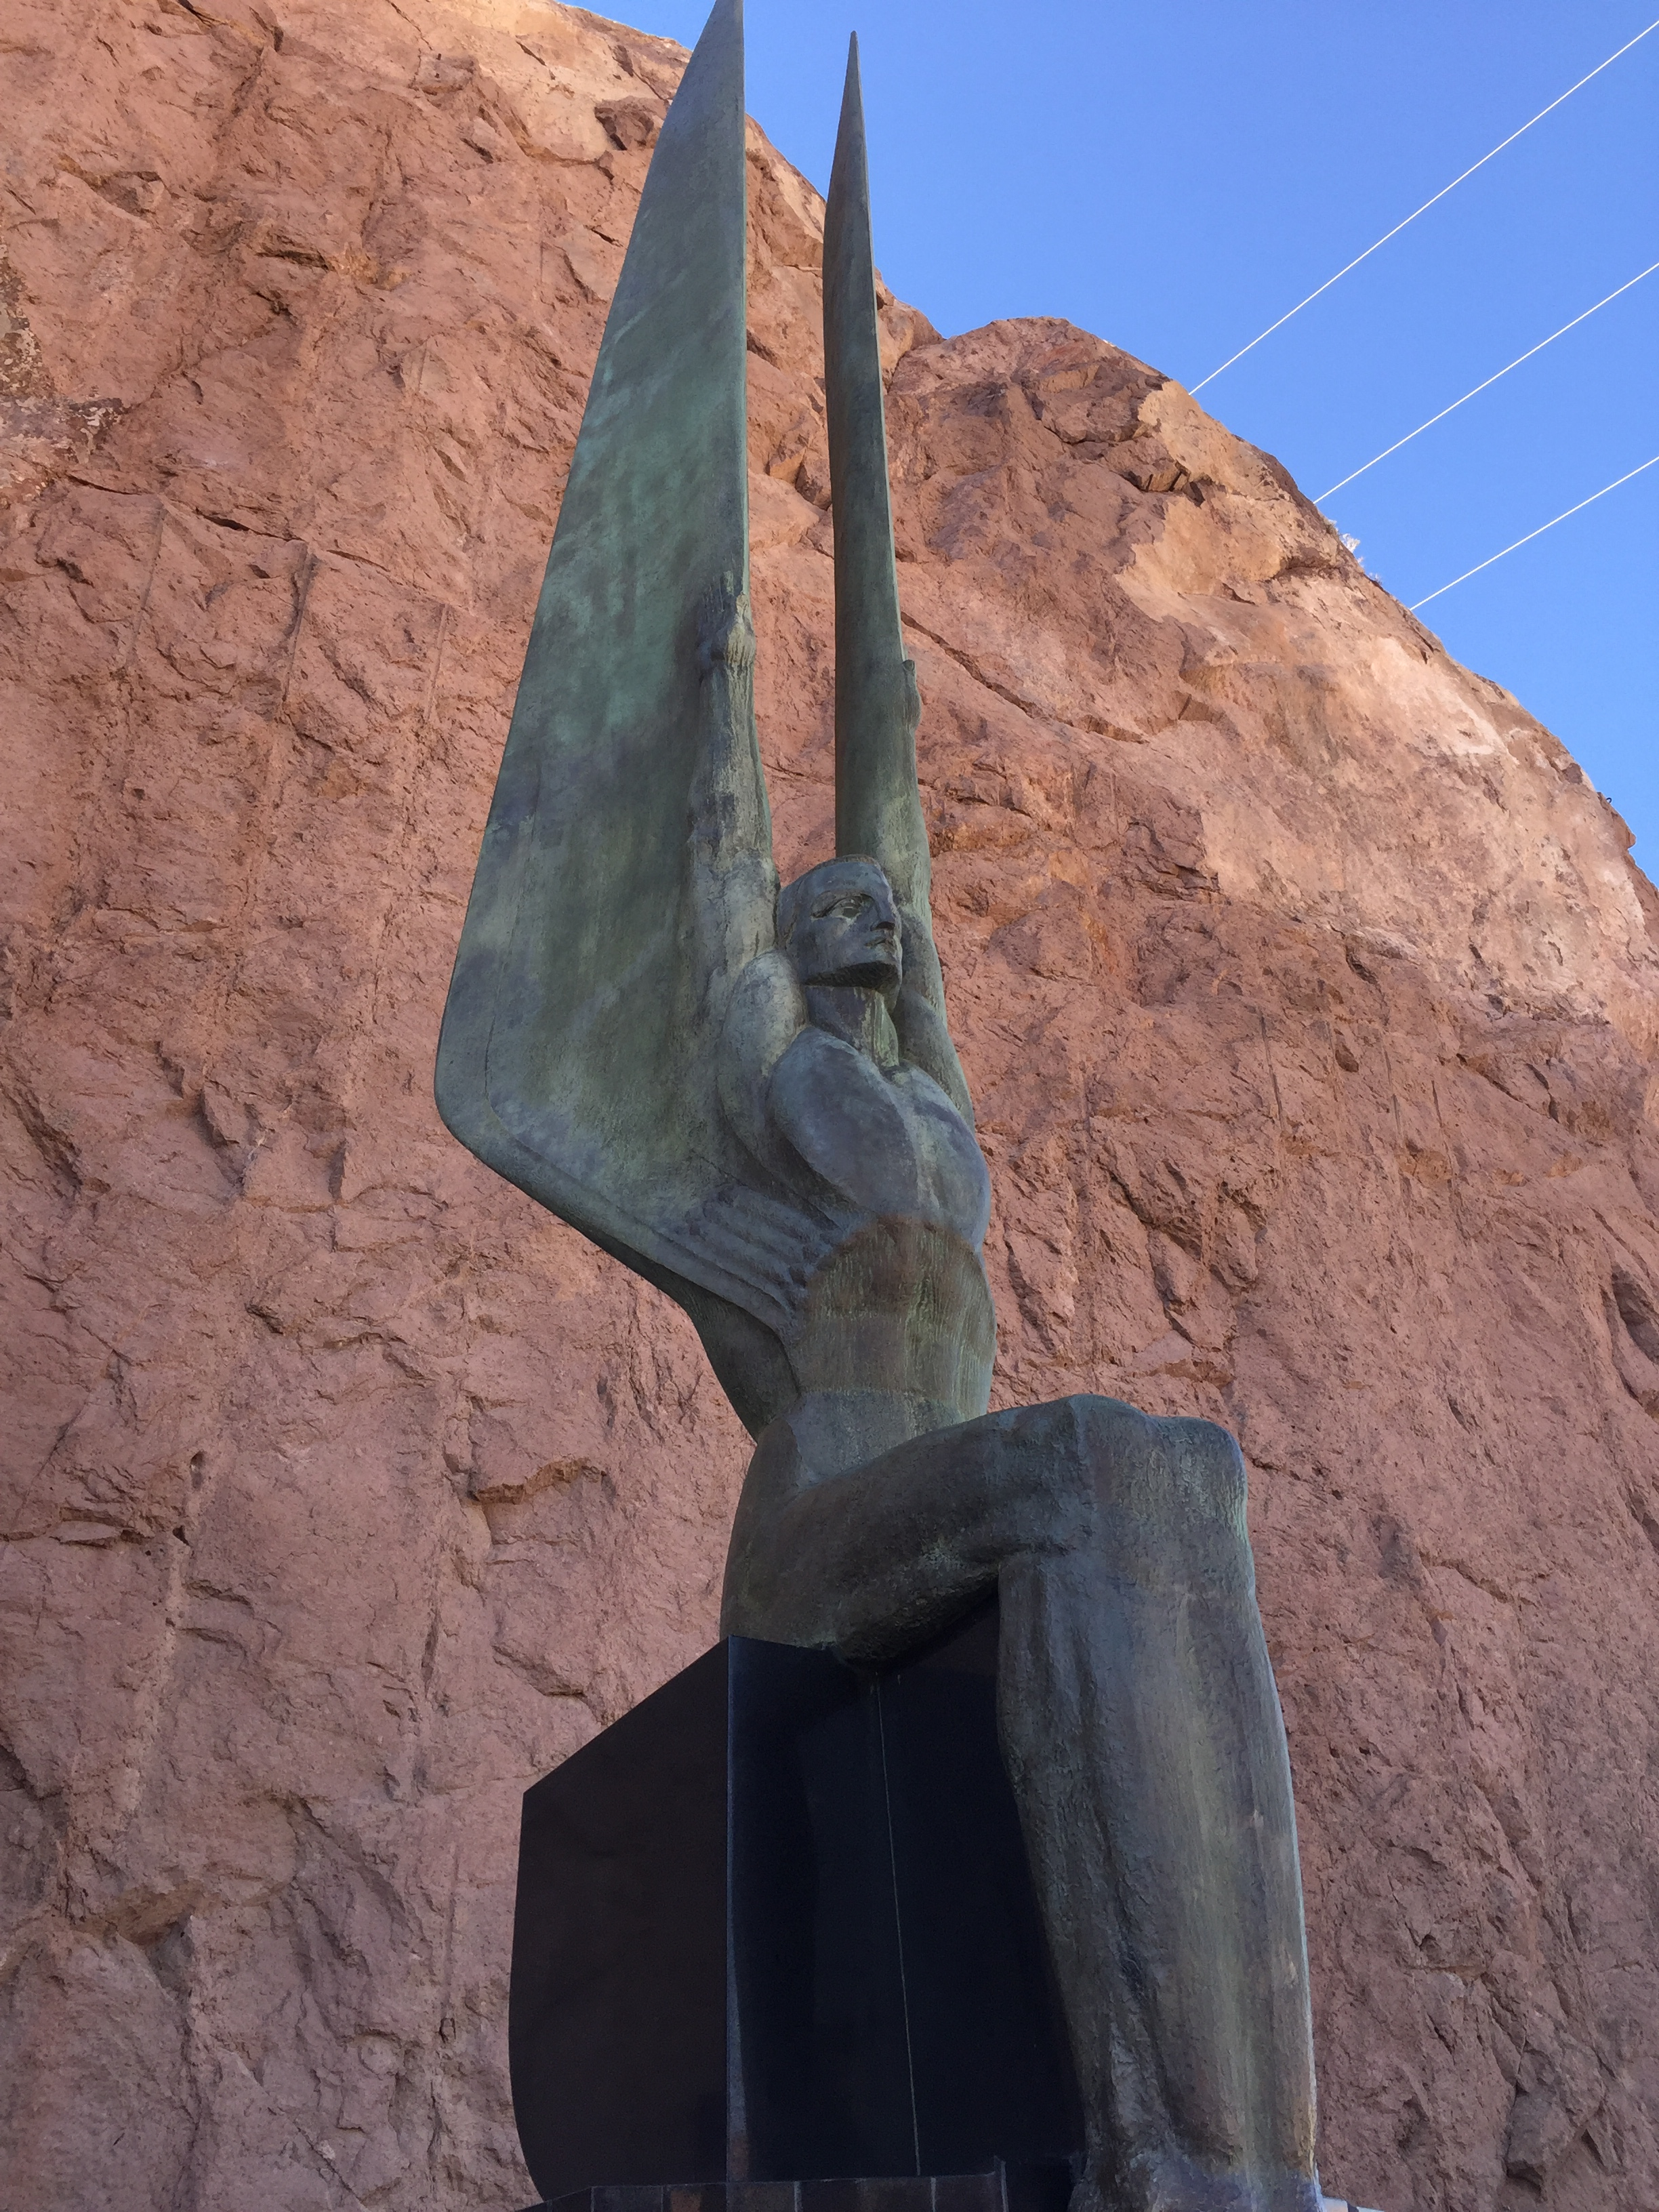 Top 10 Reasons The Hoover Dam's Amazing | About A Stepdad